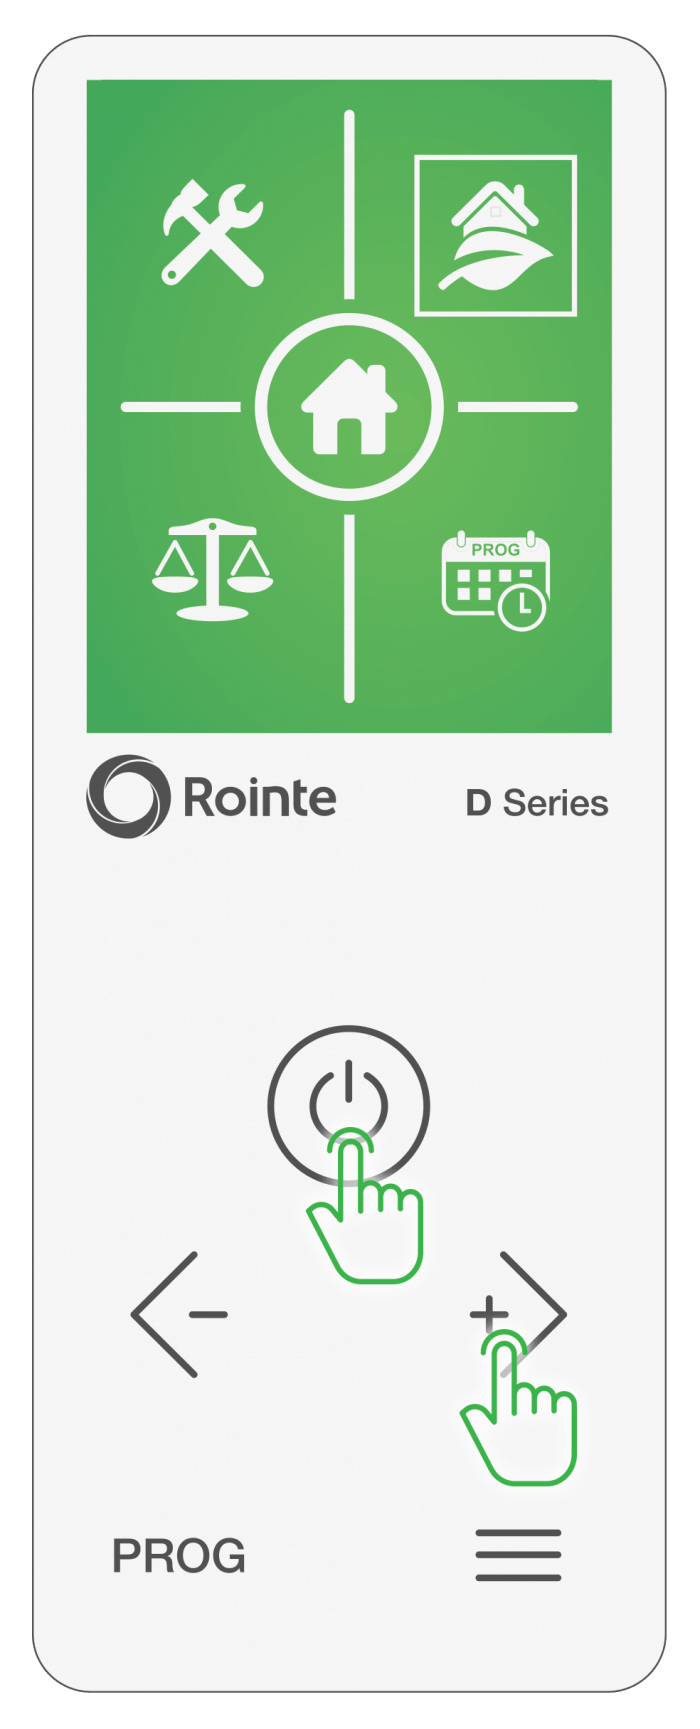 Select settings icon to update Rointe Connect app software/firmware